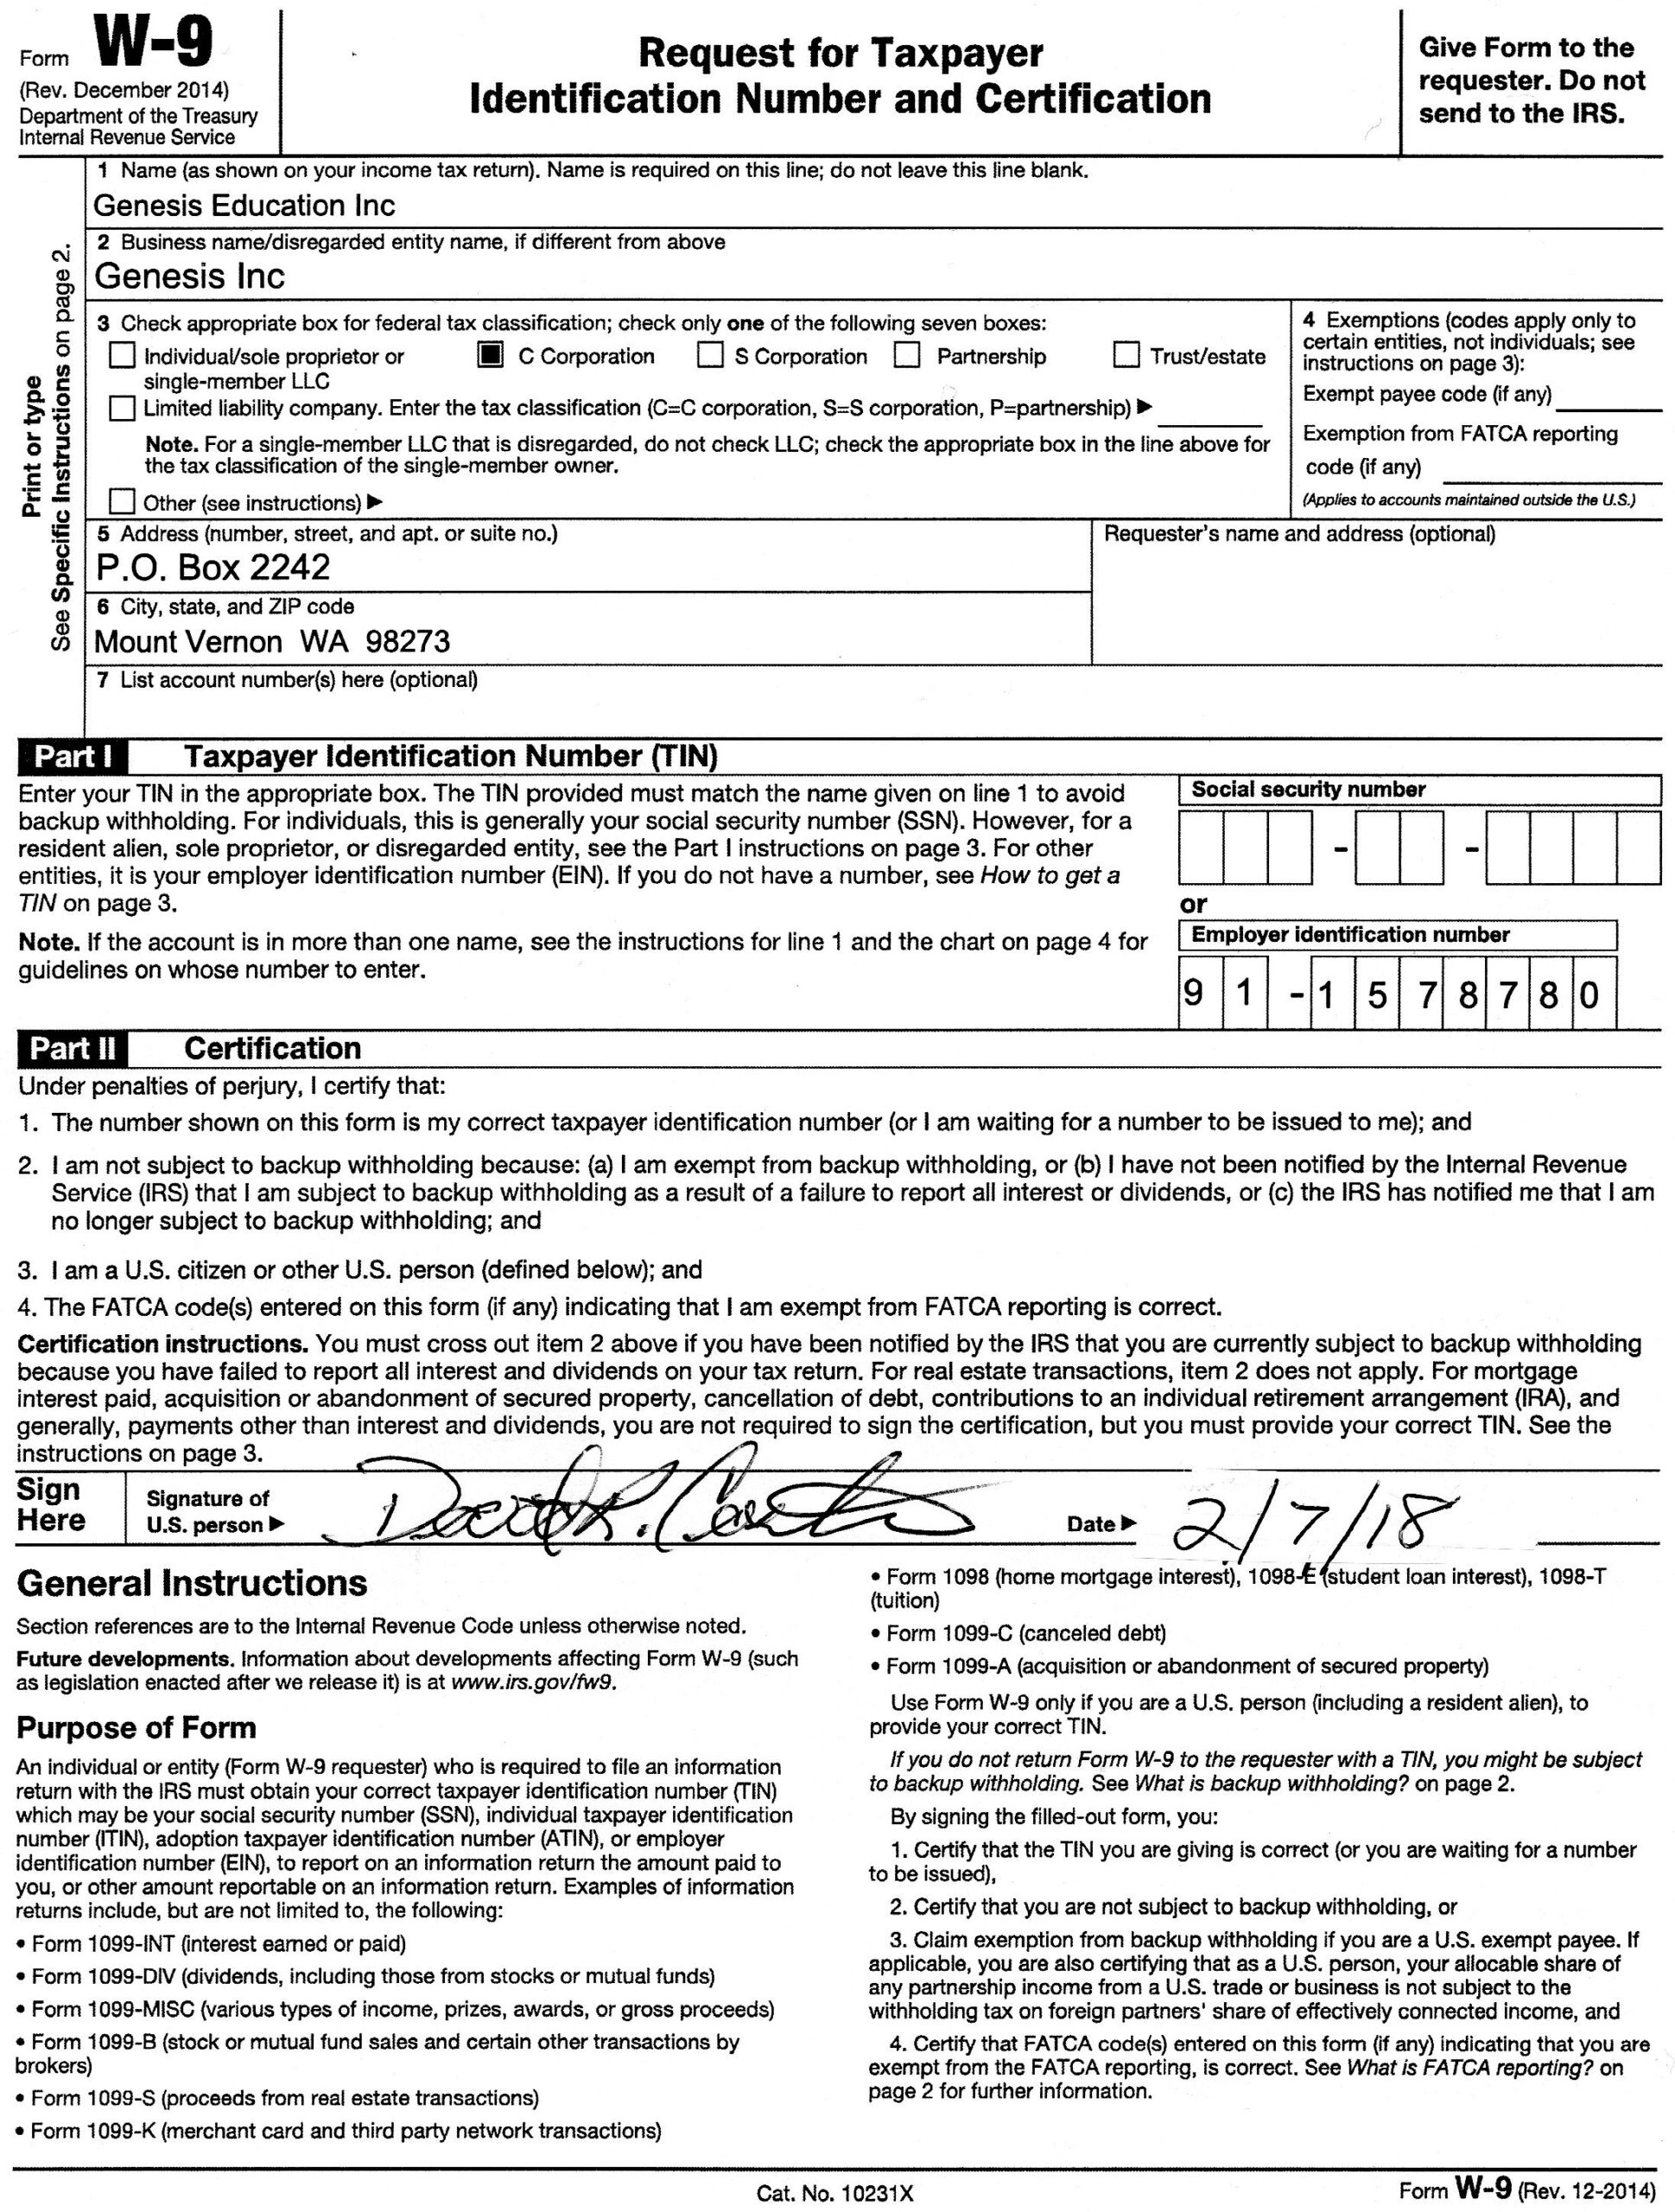 2020 W-9 Form Printable Pdf | Example Calendar Printable in Irs W9 Form 2021 Download